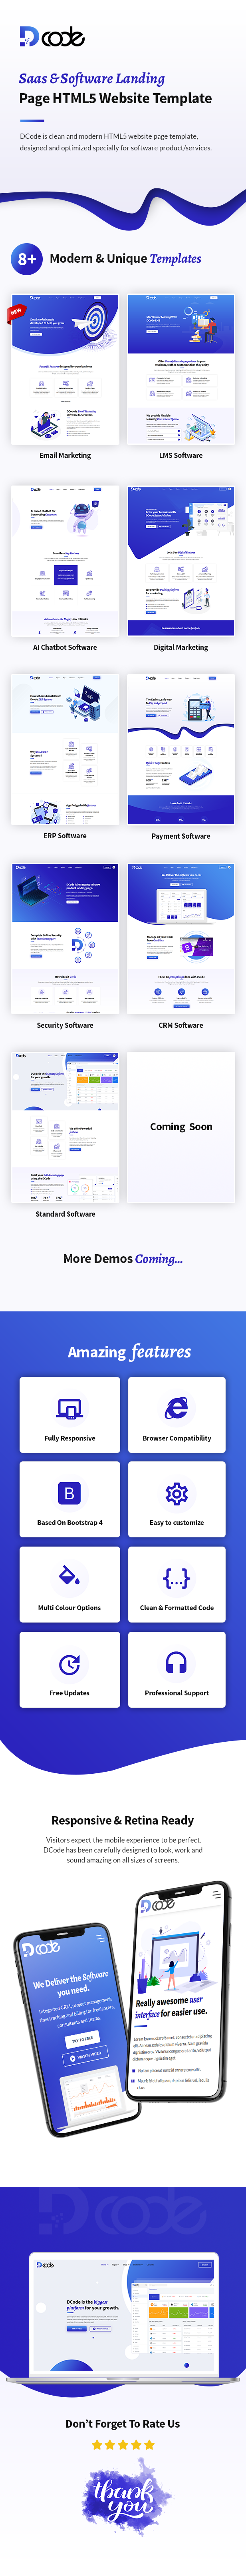 DCode - SaaS & Software Responsive Landing Page Template - 6